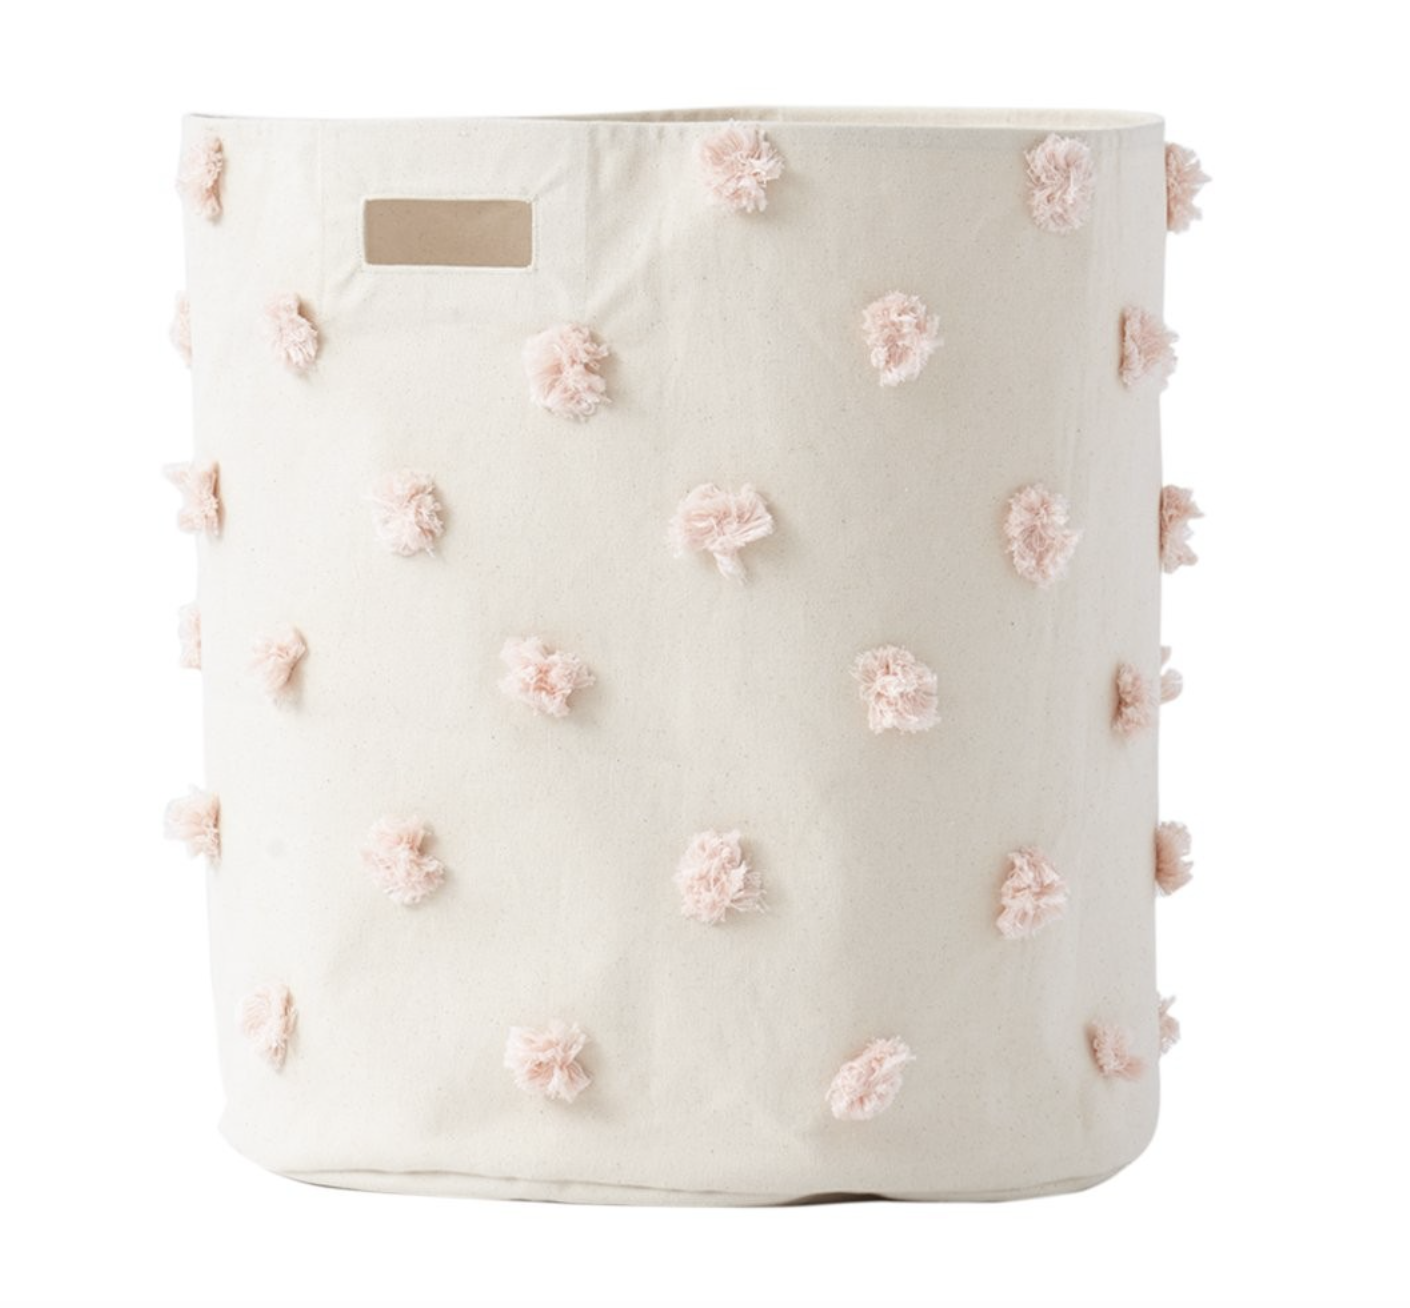 Pom poms, need I say more!? Maybe this will make the men in our lives actually put their clothes in this hamper..or maybe not!?